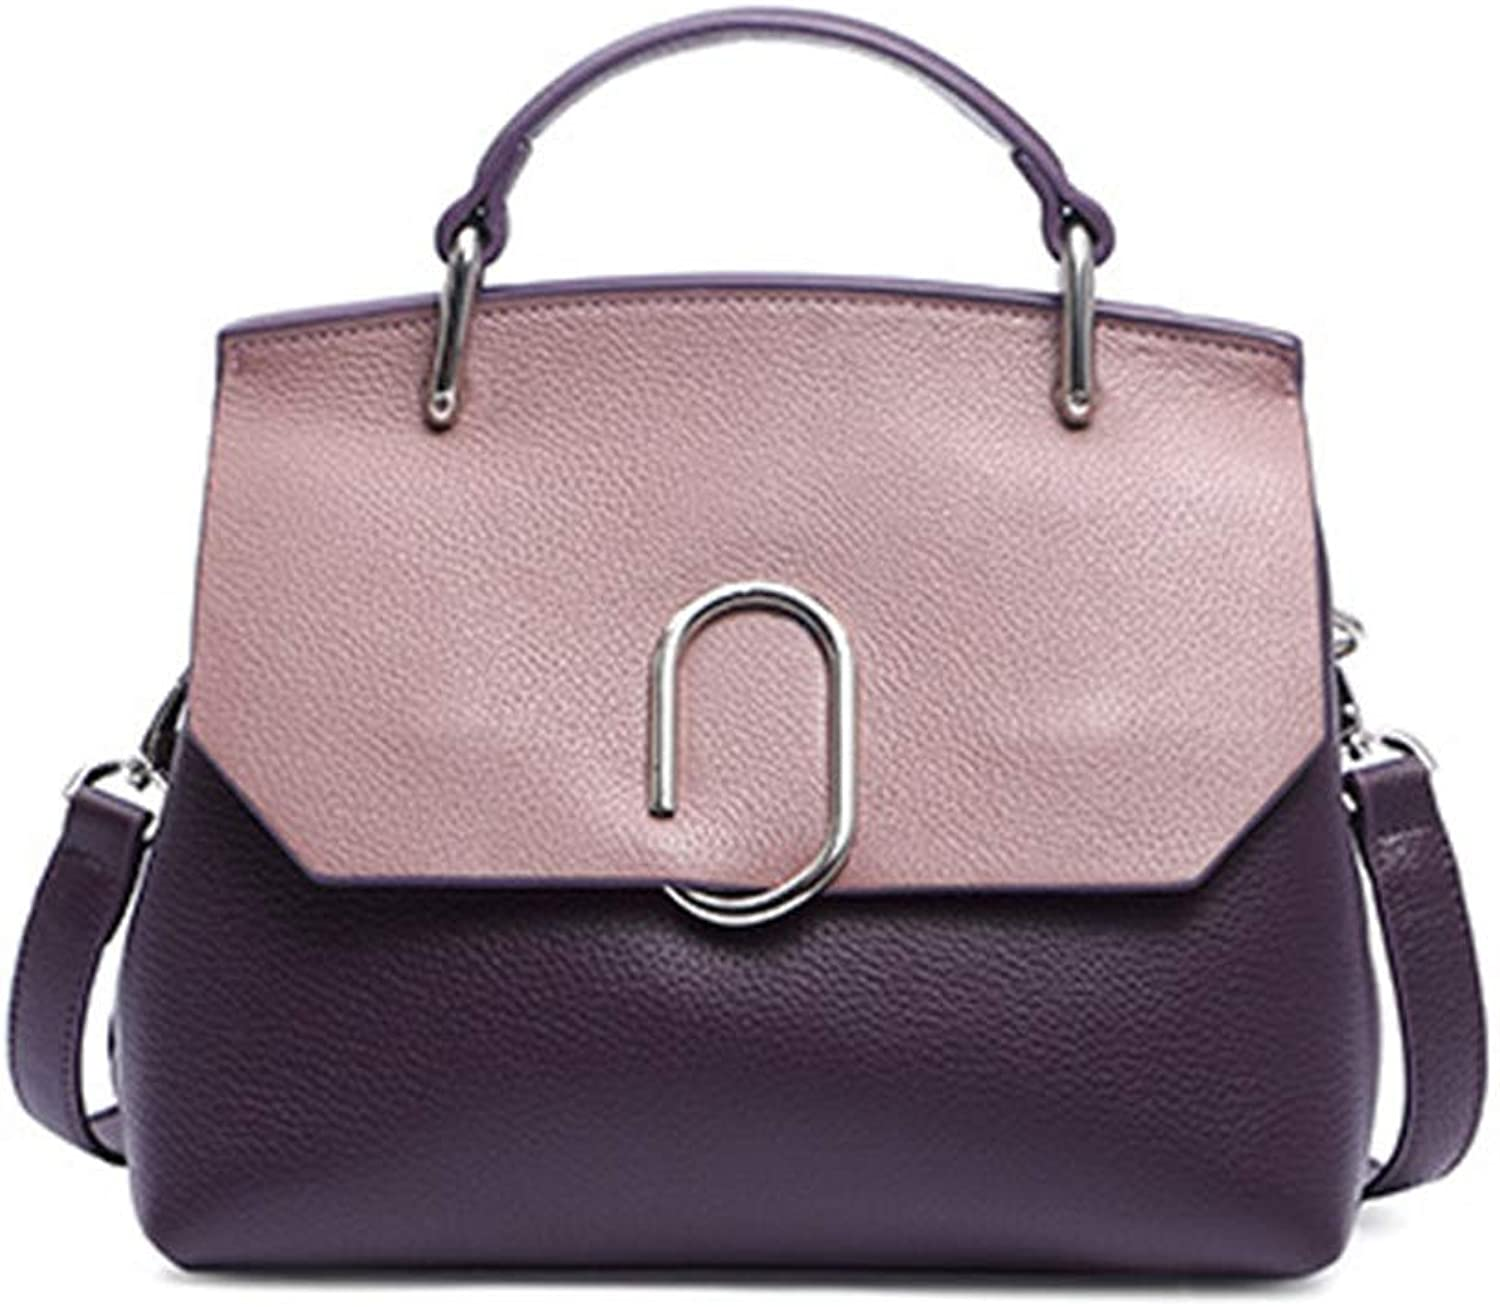 Sturdy Fashian Wild Handbags Handbags Shoulder Diagonal Package Elegant Casual Style Multicolor Choice Durable Large Capacity (color   Purple)